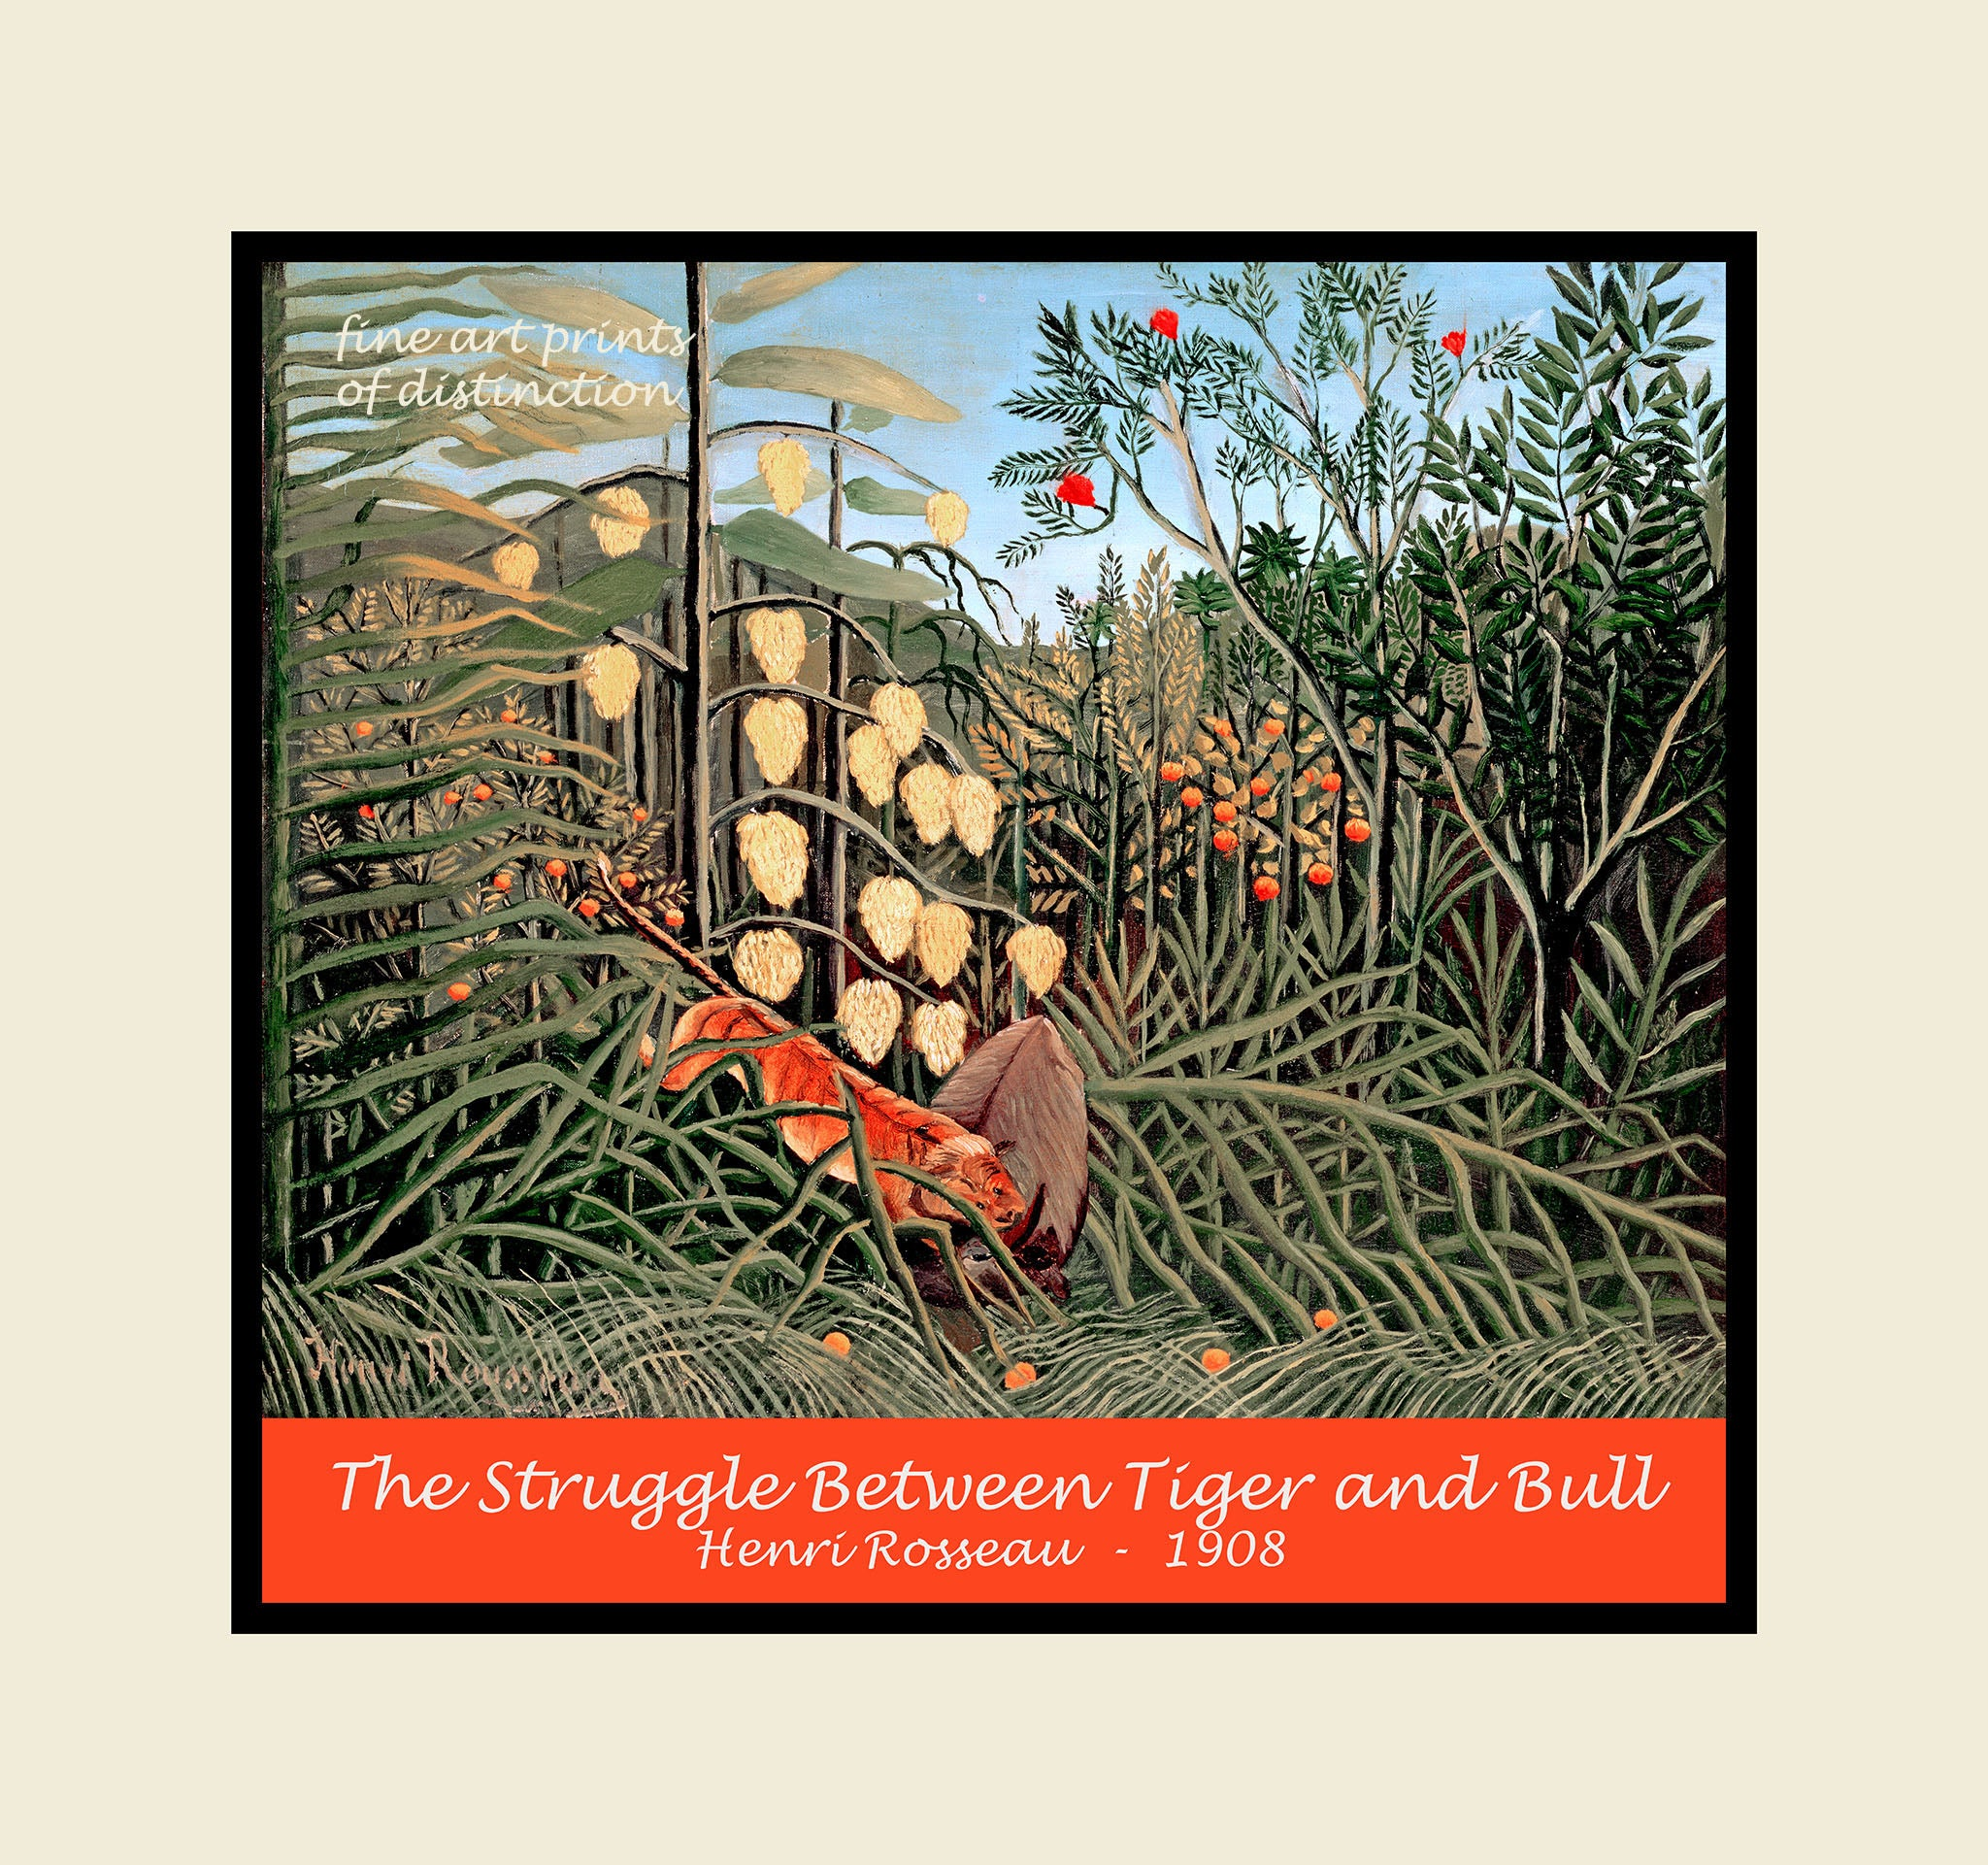 c635e3aa995 The Struggle Between Tiger and Bull painted by Henri Rousseau premium poster